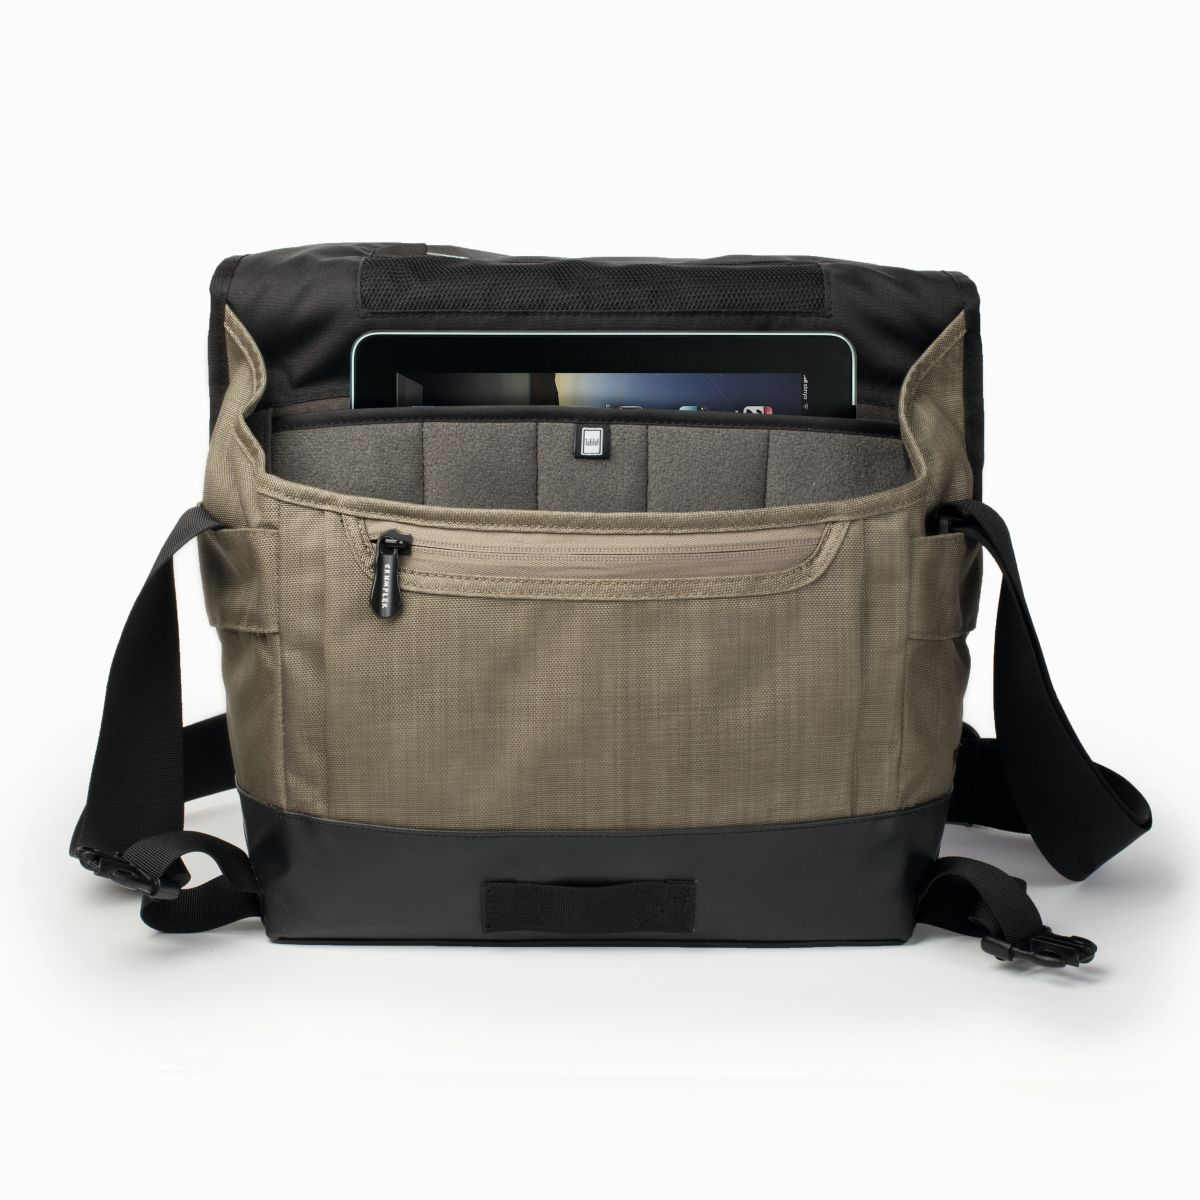 CRUMPLER-MULI-PHOTO-4500- Fotocredit: Crumpler